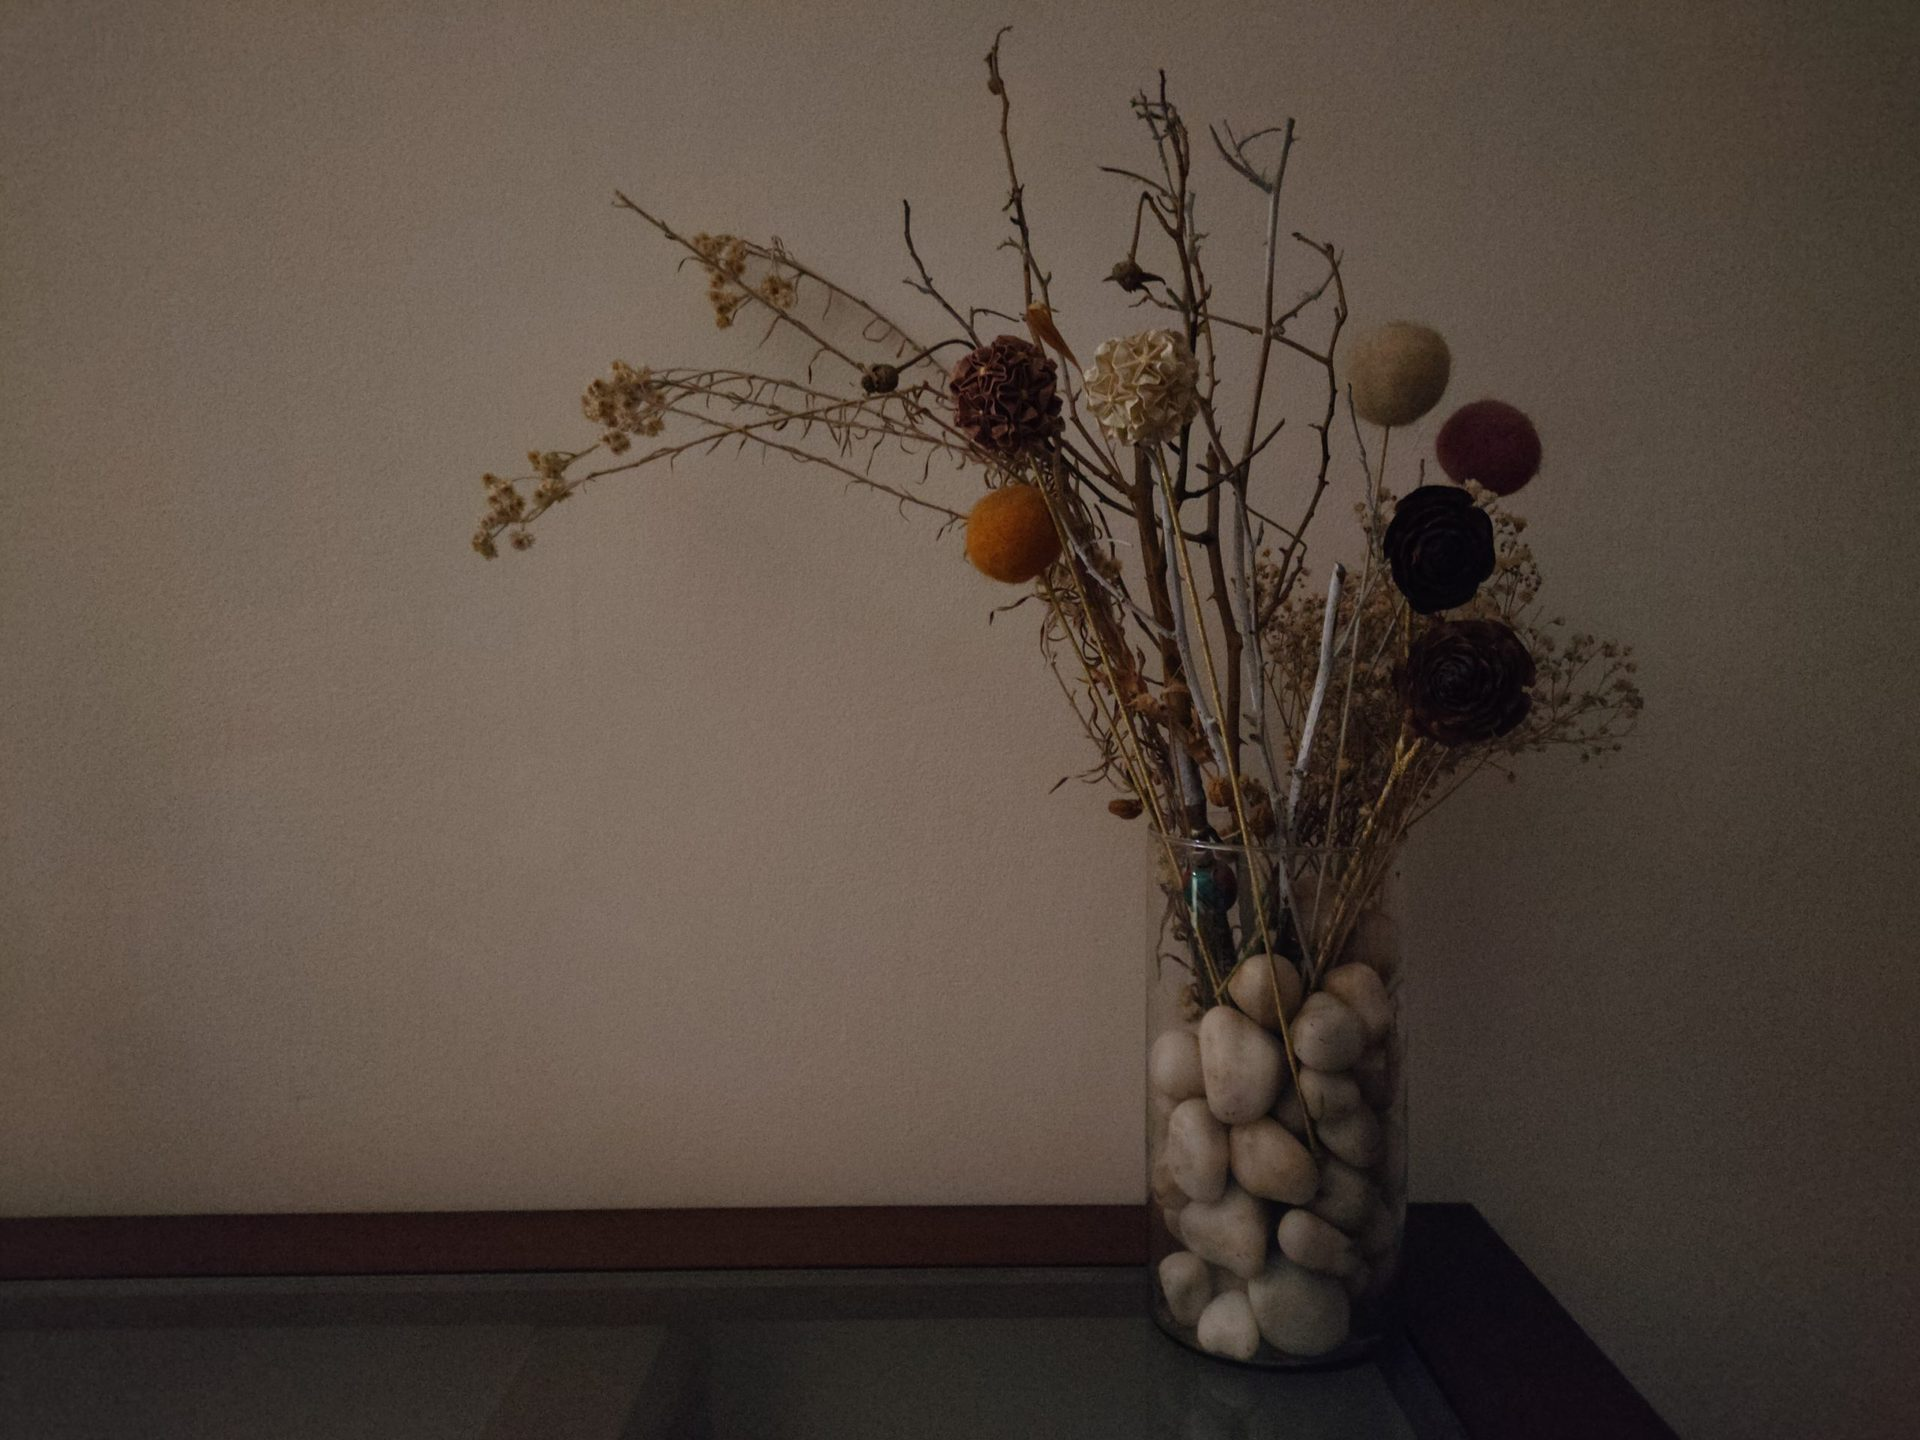 Realme GT low light shot of dried grasses and flowers in a vase with pebbles.